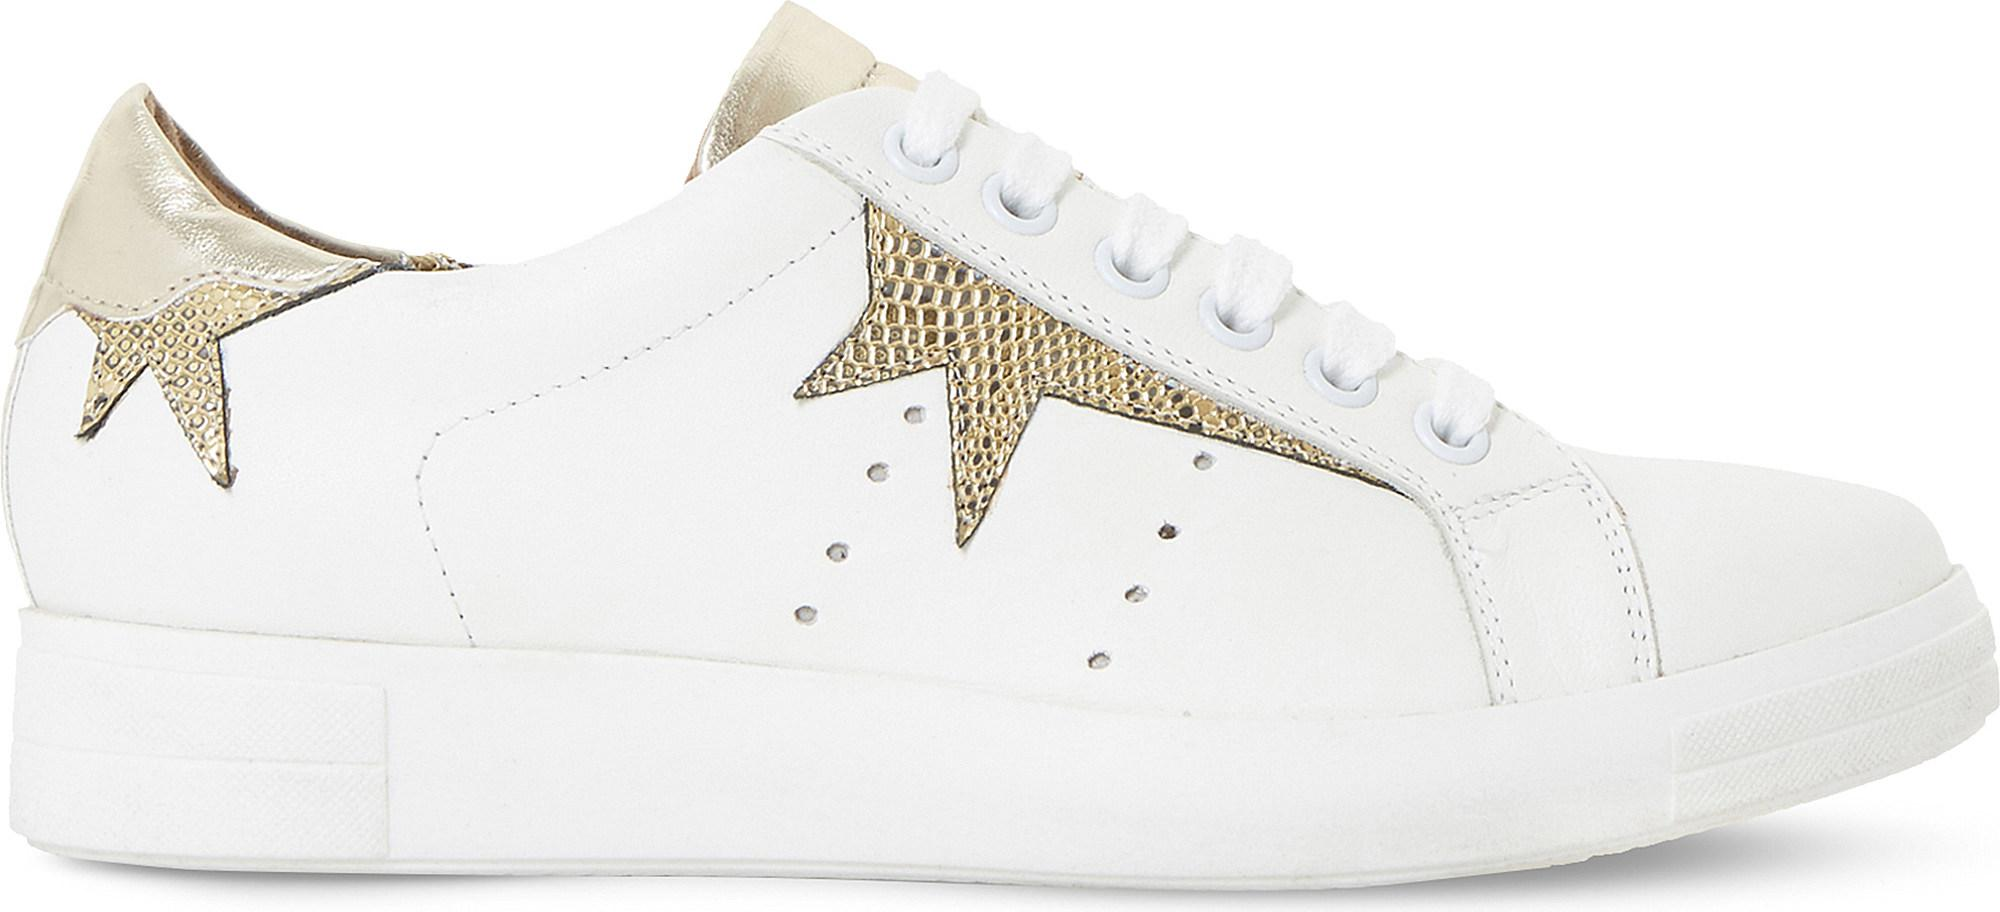 Latest Dune Gold-Metalic Equel Leather Star Trainers for Women Sale